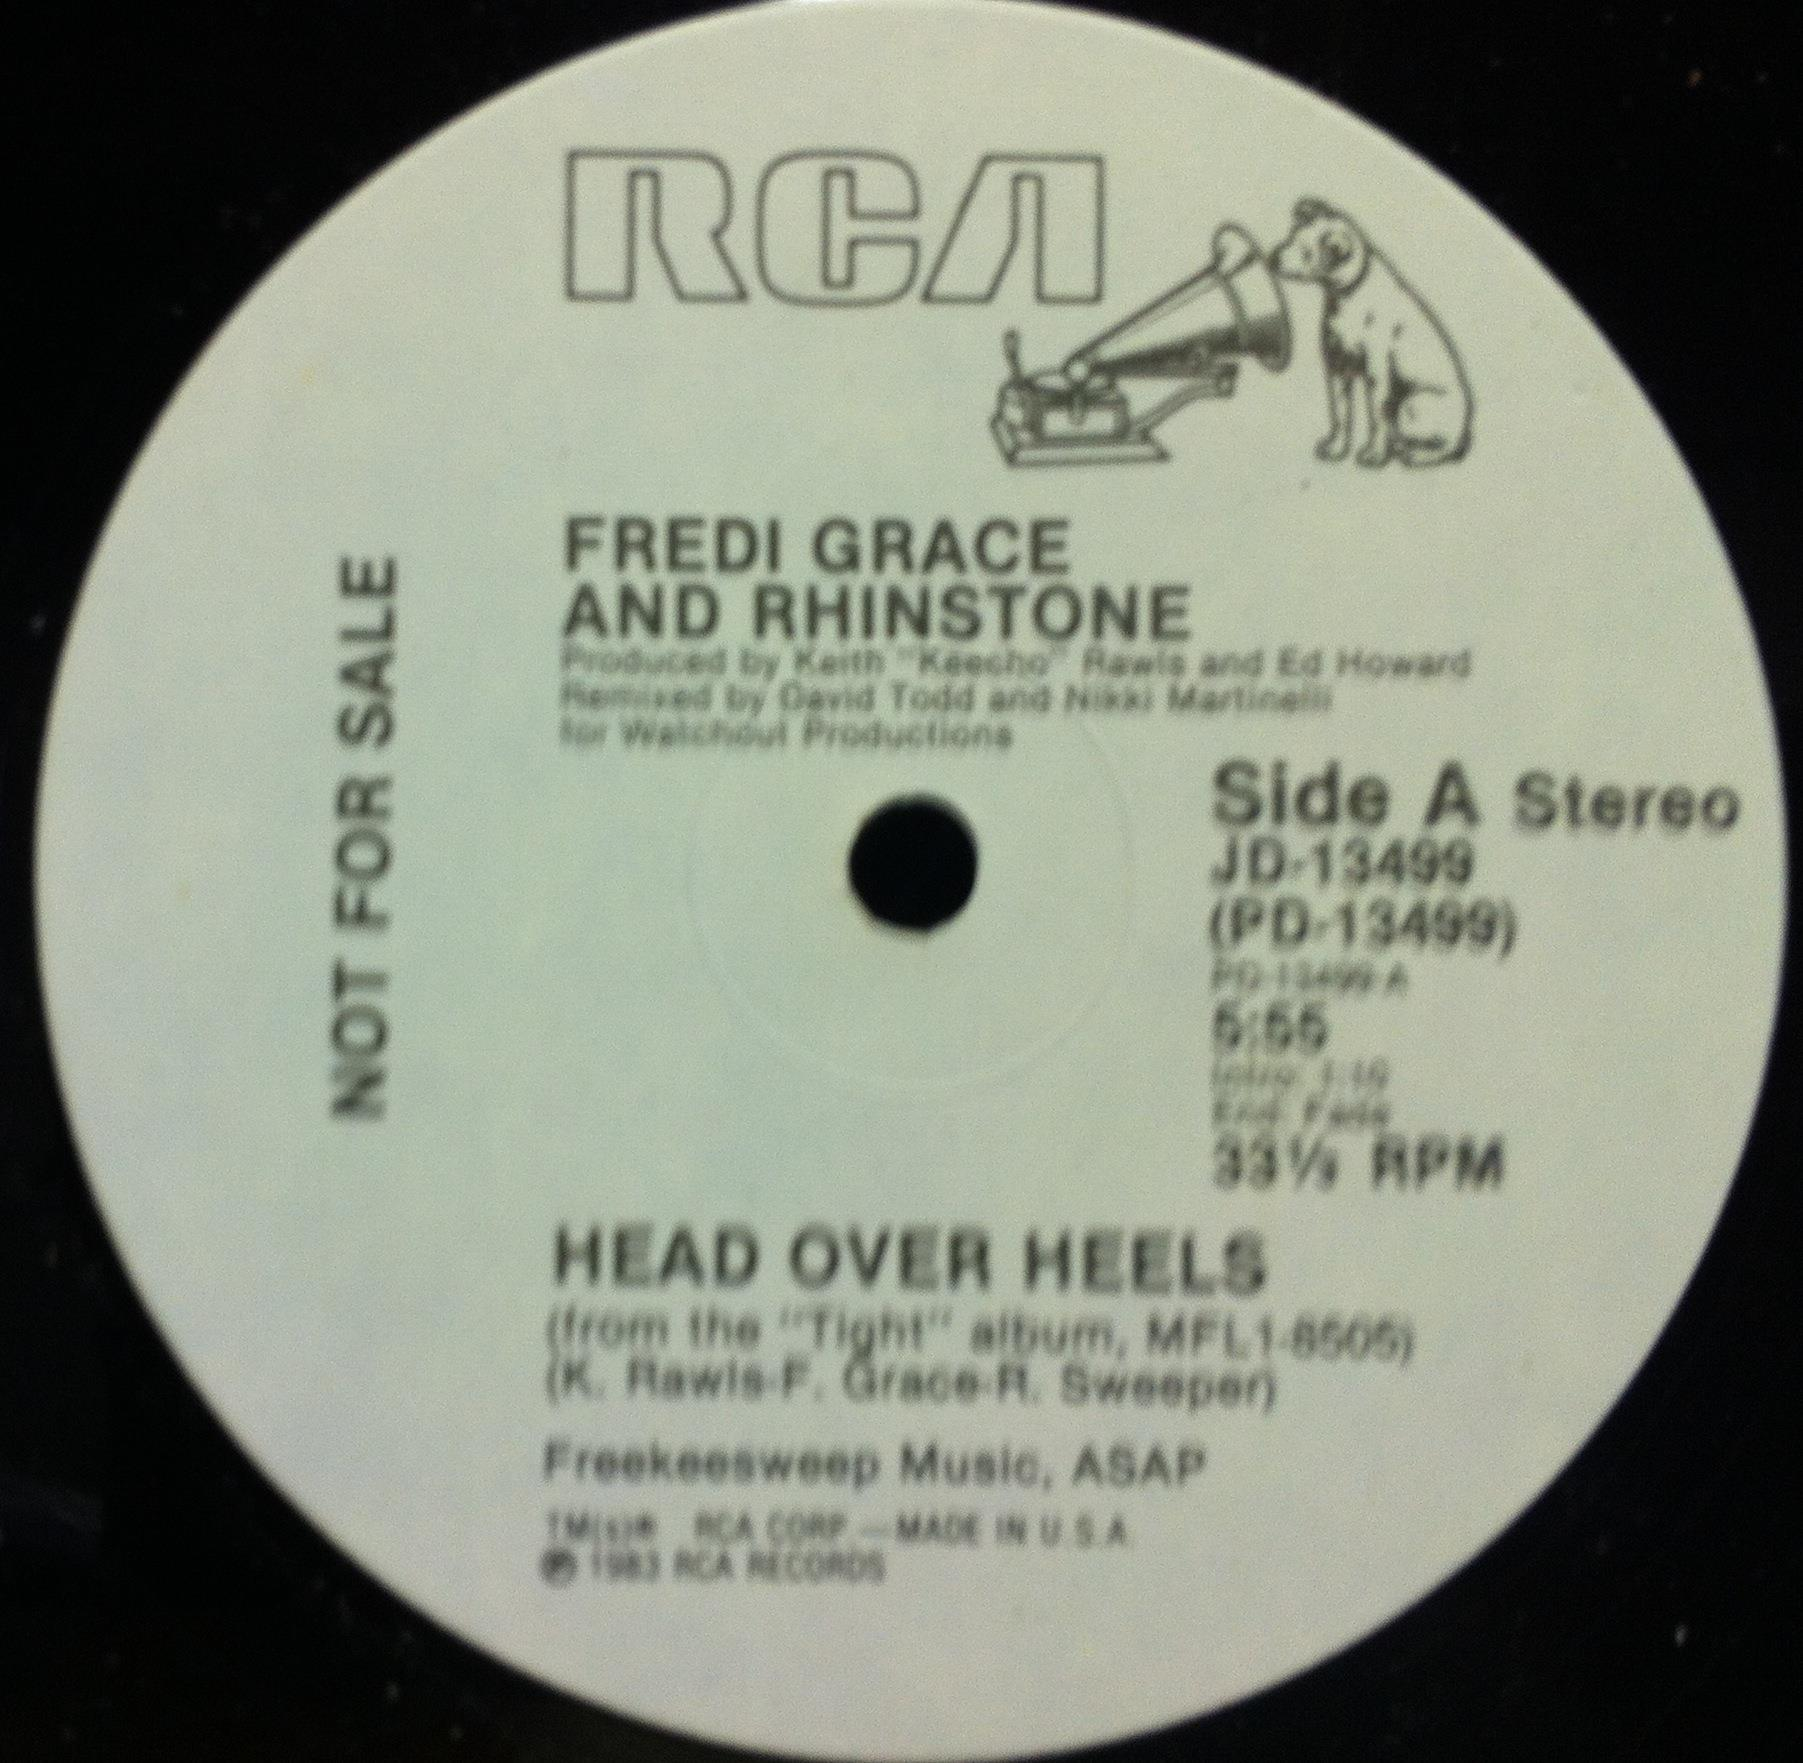 Fredi Grace And Rhinstone - Get On Your Mark